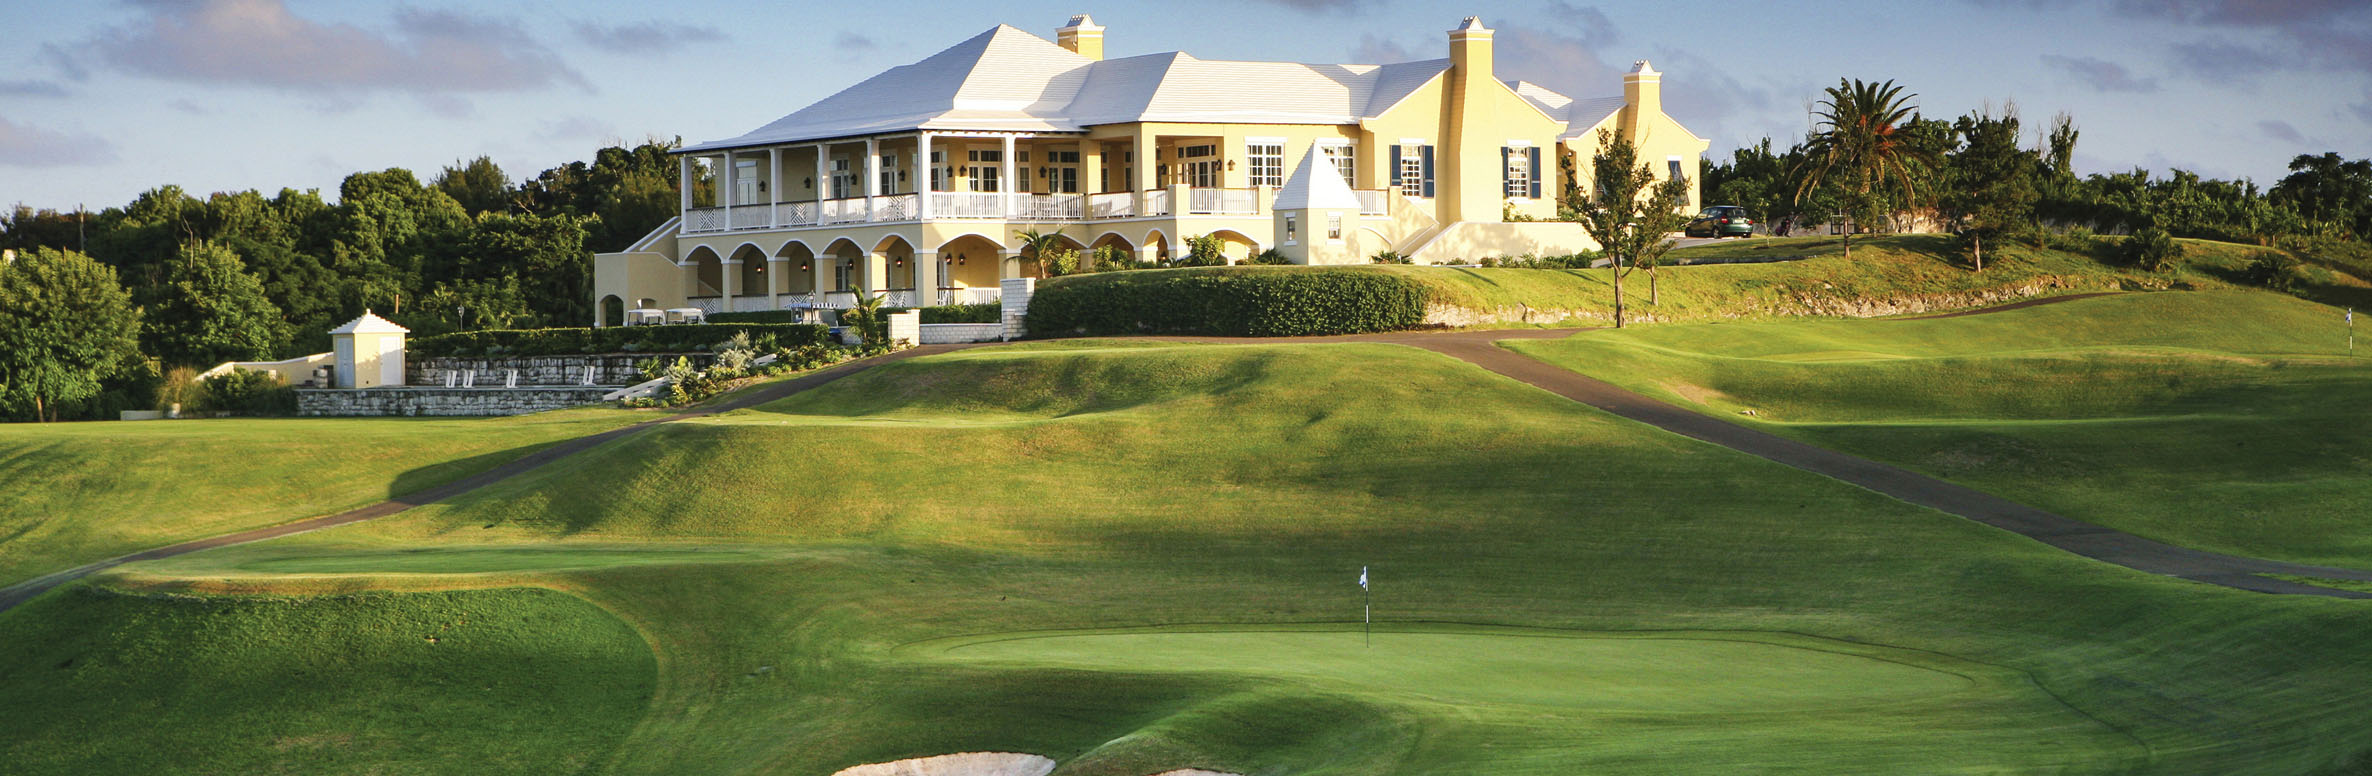 Golf Course Image - Tuckers Point Golf Club No. 18